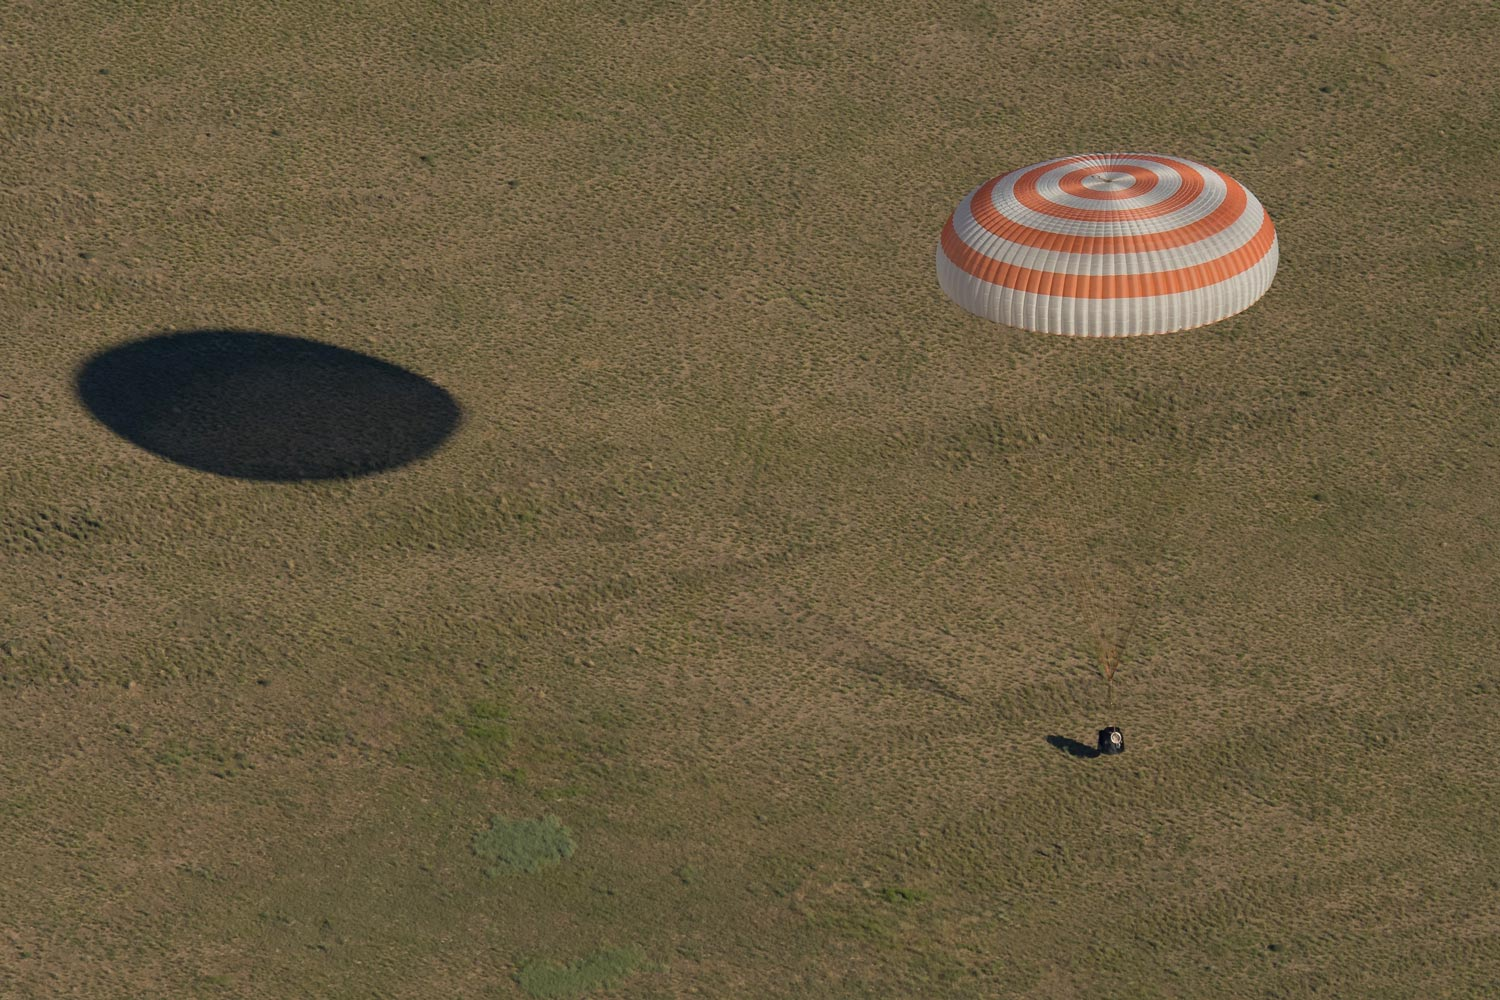 The Soyuz MS-07 spacecraft as it lands with crew members Anton Shkaplerov of Russia, Scott Tingle and Norishige Kanai of Japan, all returning from 168 days aboard the space station.